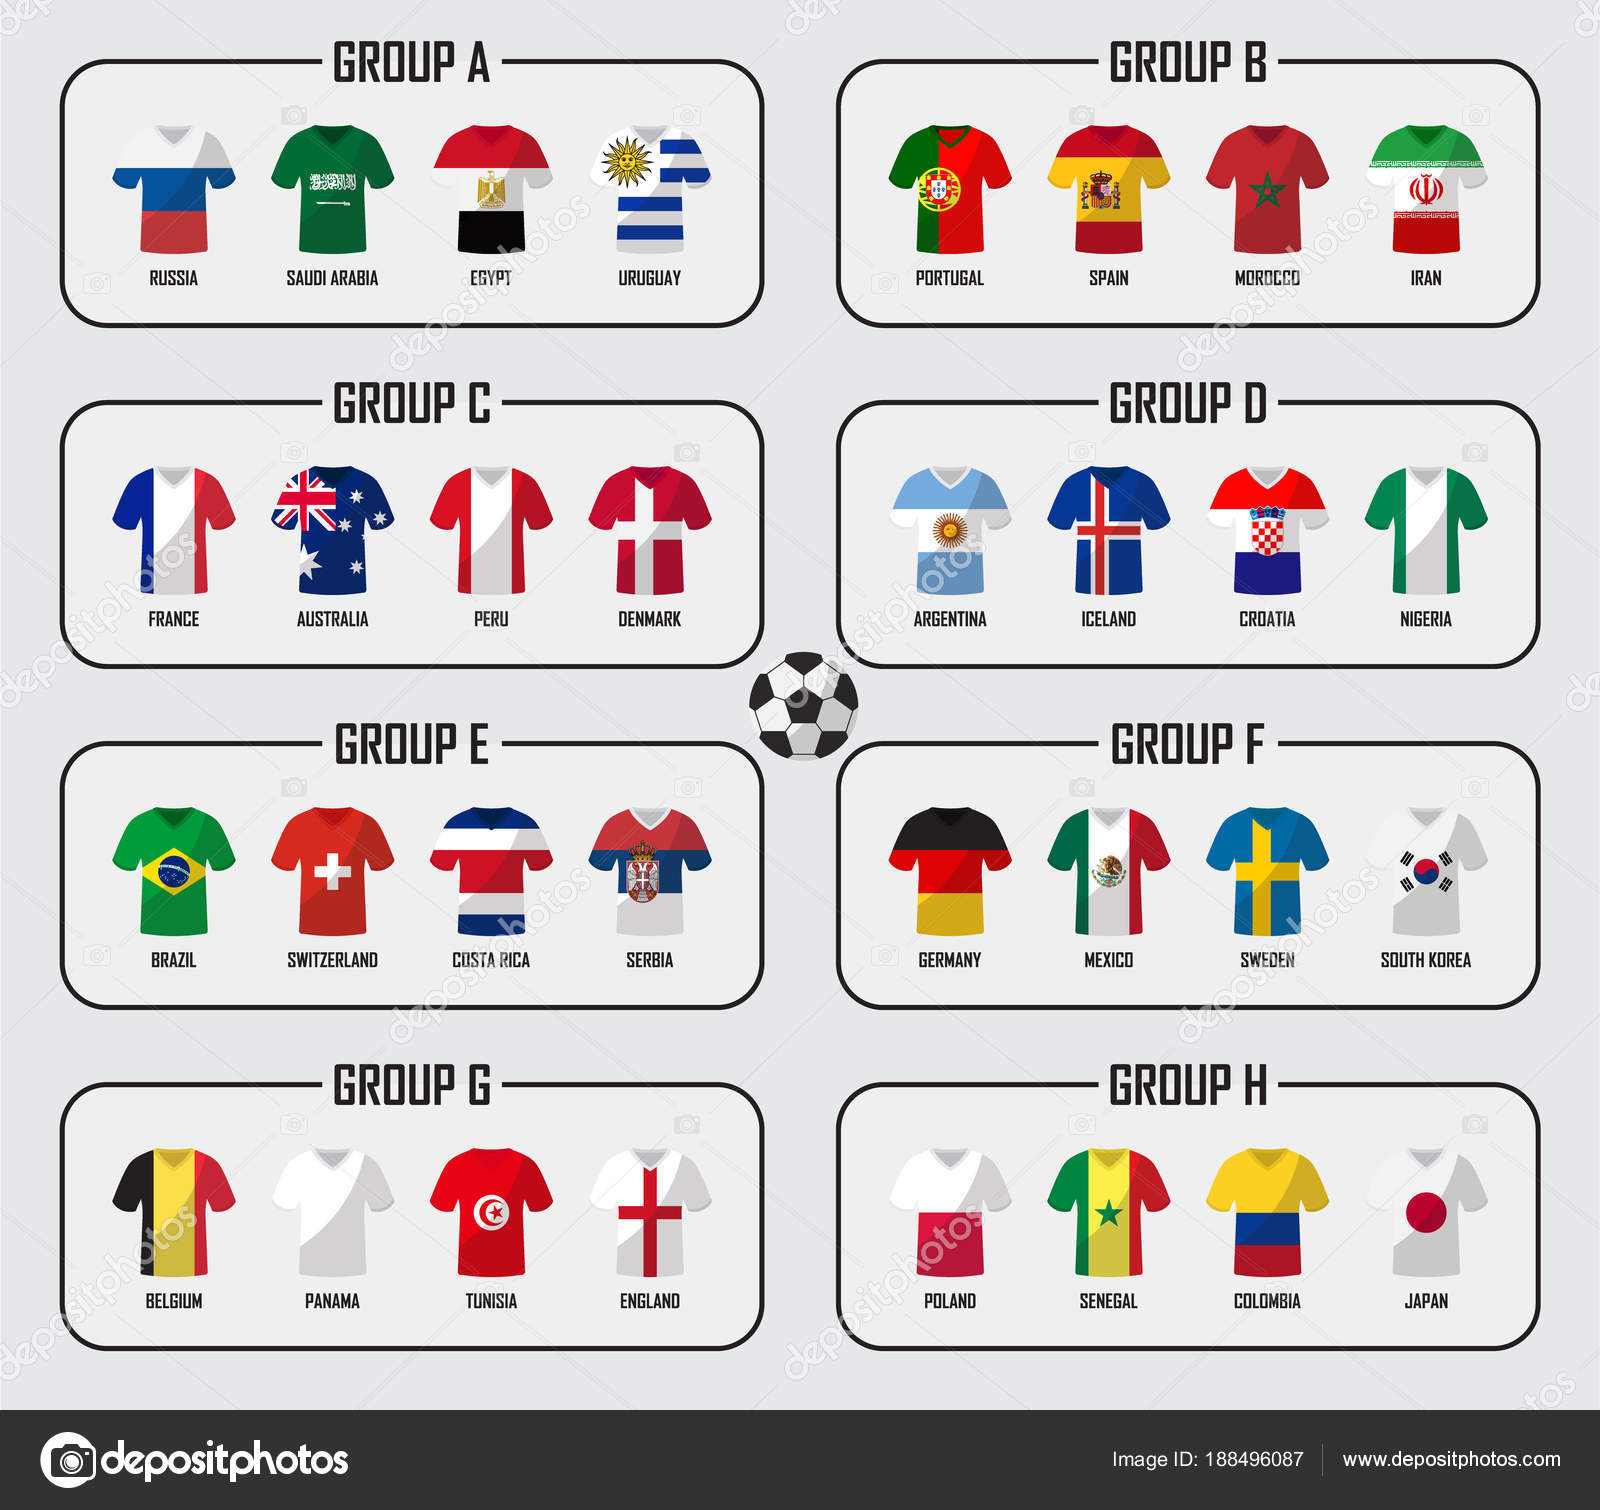 ed50bc656 Soccer cup 2018 team group set . Football players with jersey uniform and national  flags .